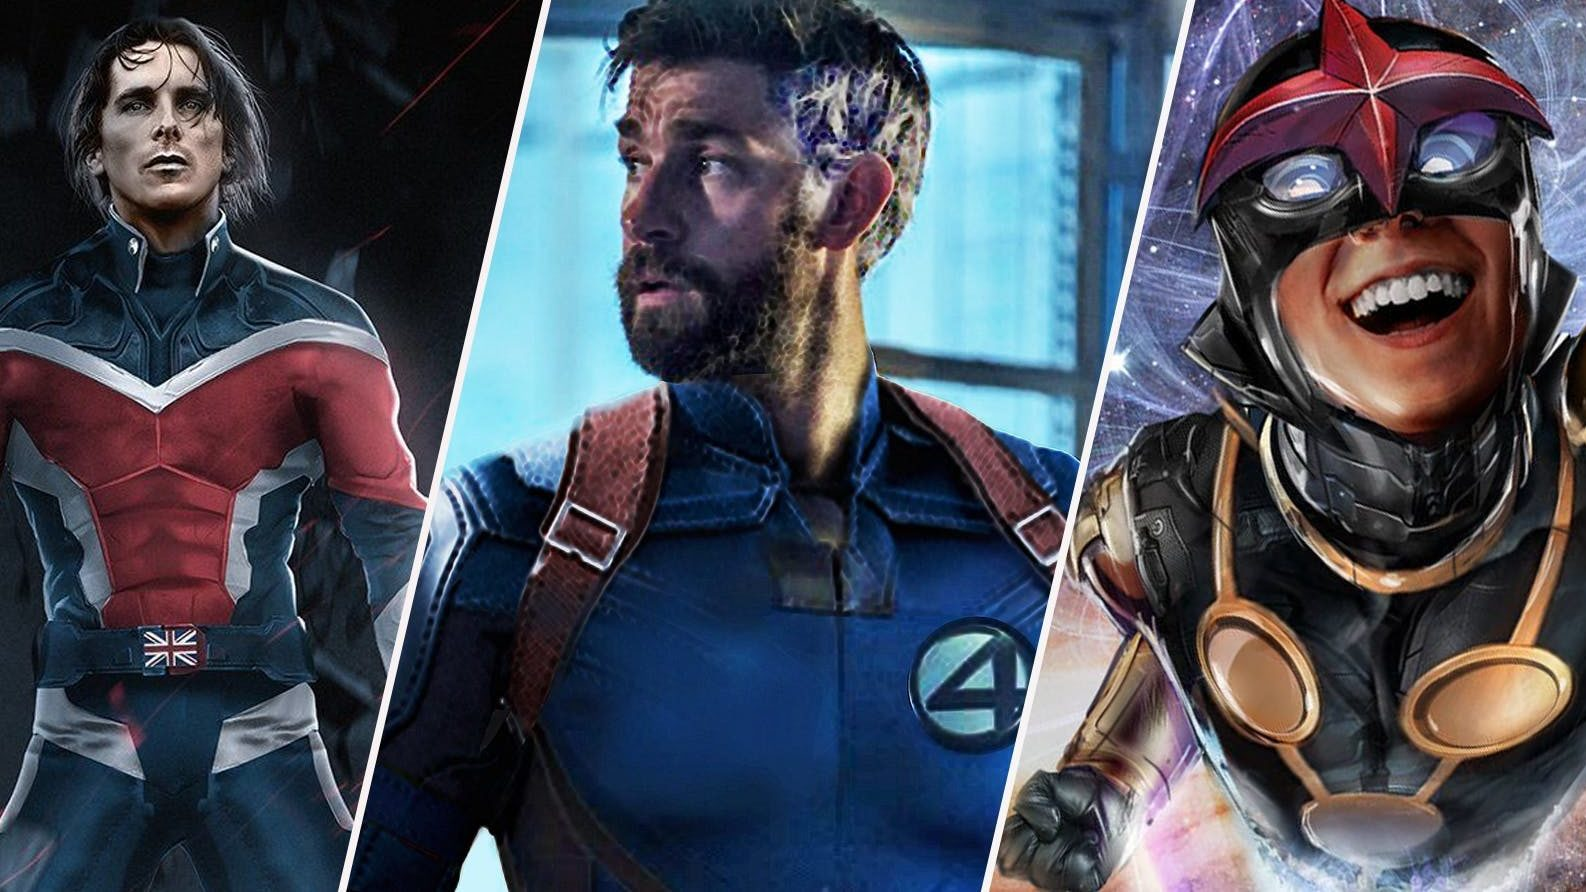 Avengers update: Will there be another MCU movie after Endgame?